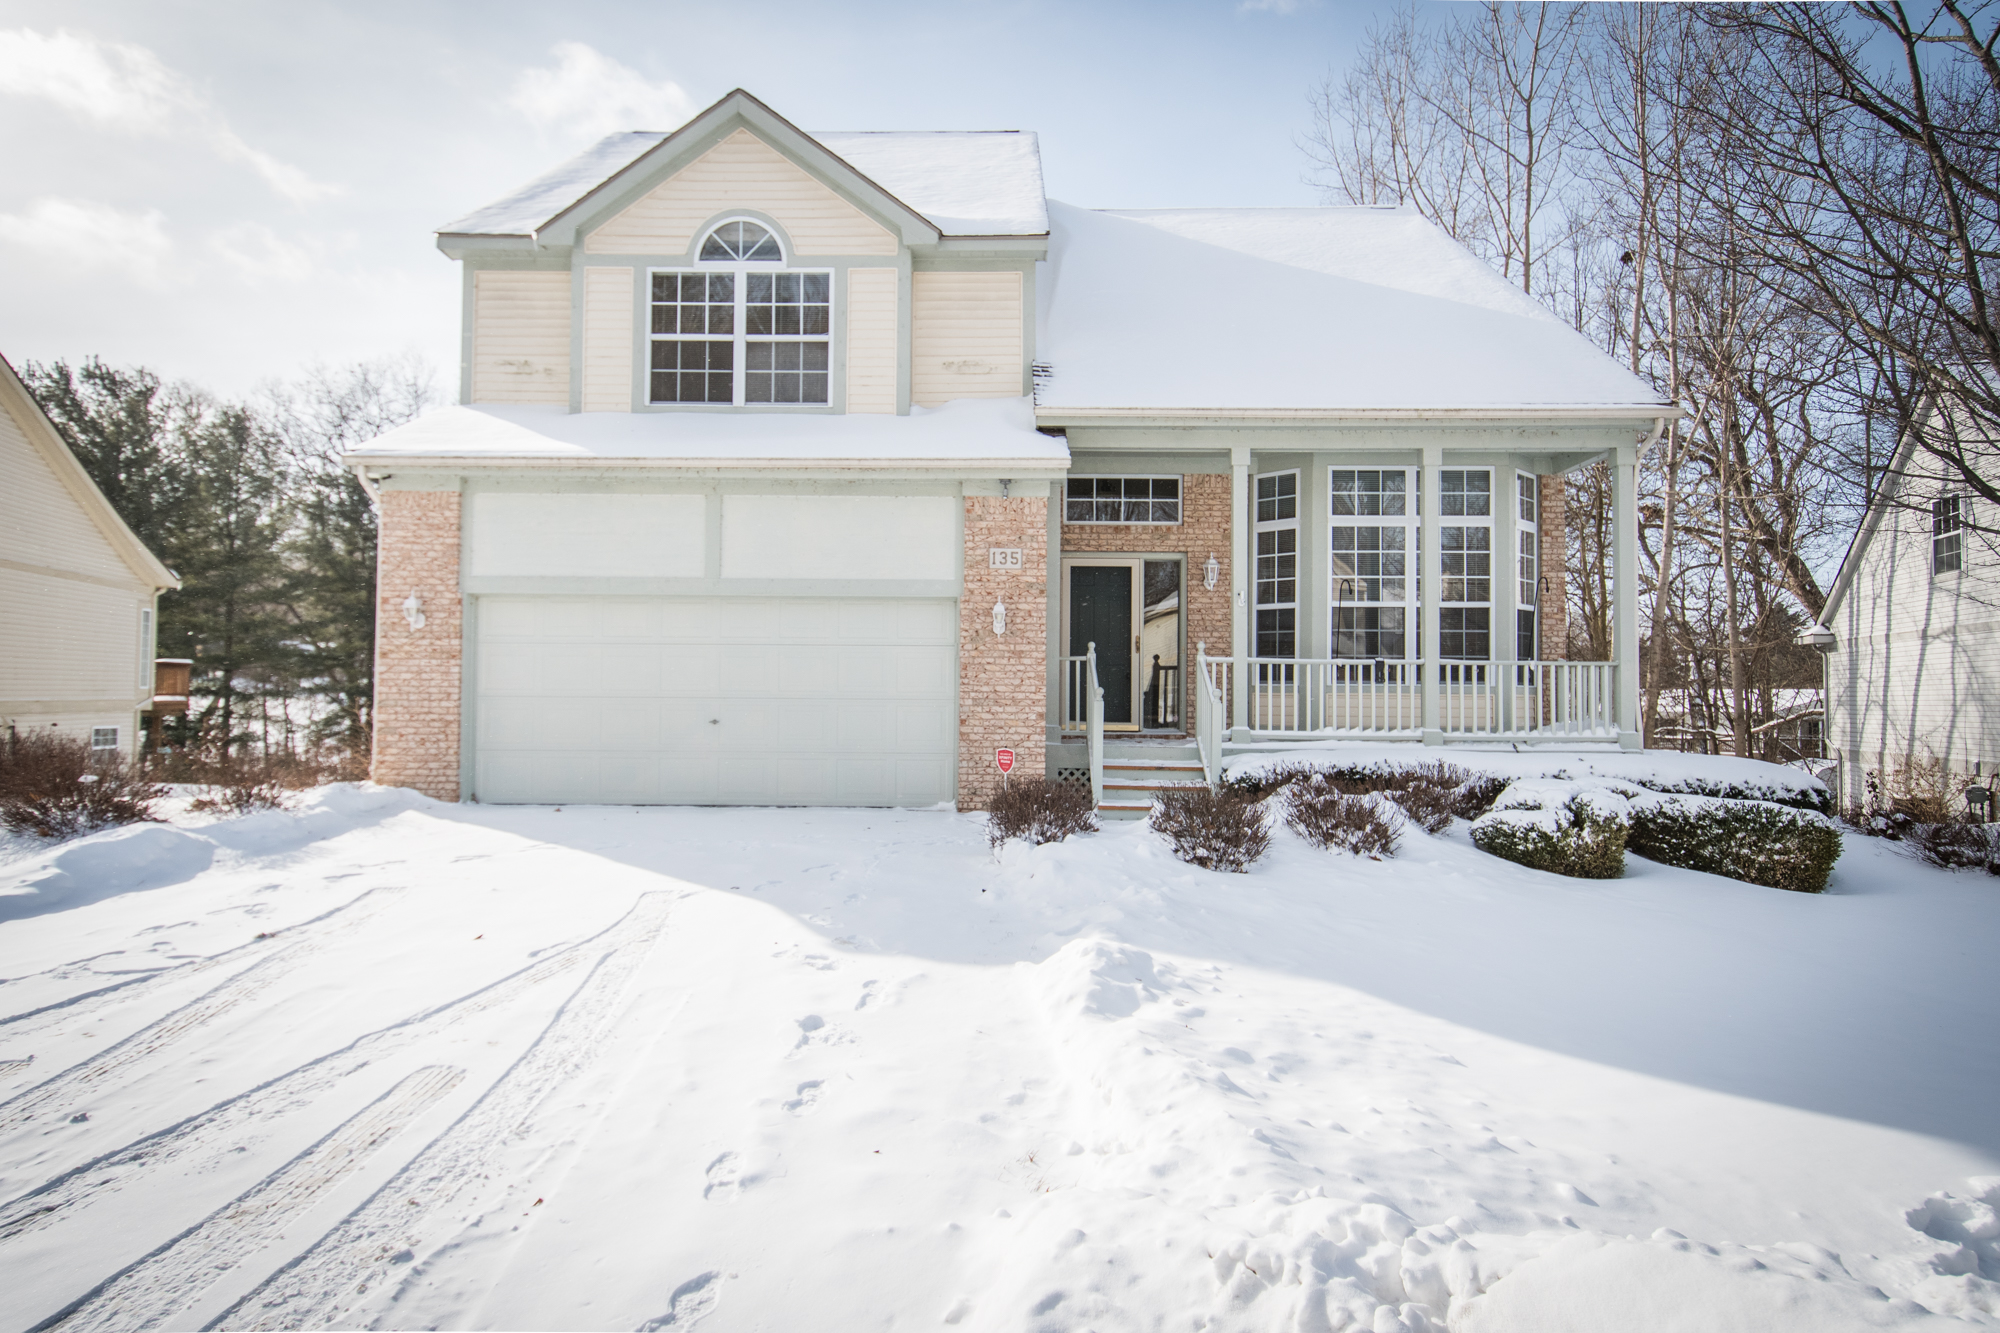 Lakeshore Pointe, Howell - $280,000   DOM 31 / Sold for 98% of asking price / 18 Showings